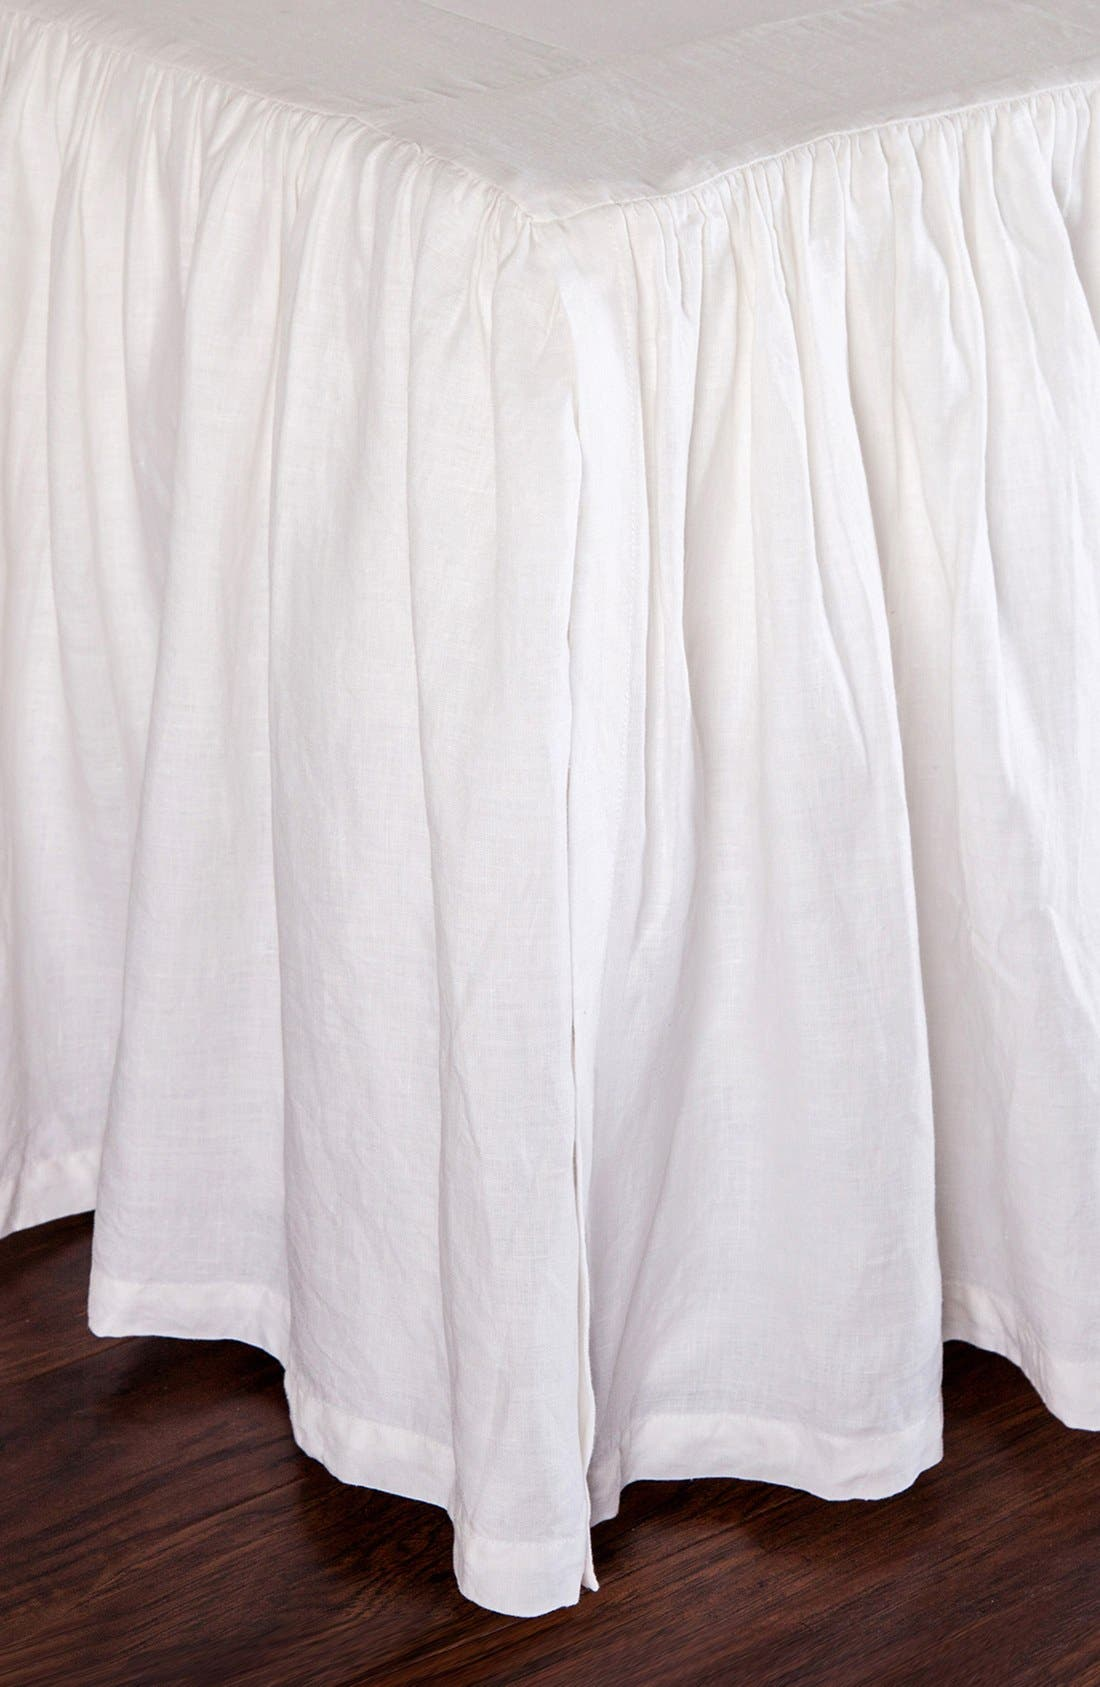 Gathered Linen Bed Skirt,                         Main,                         color, WHITE